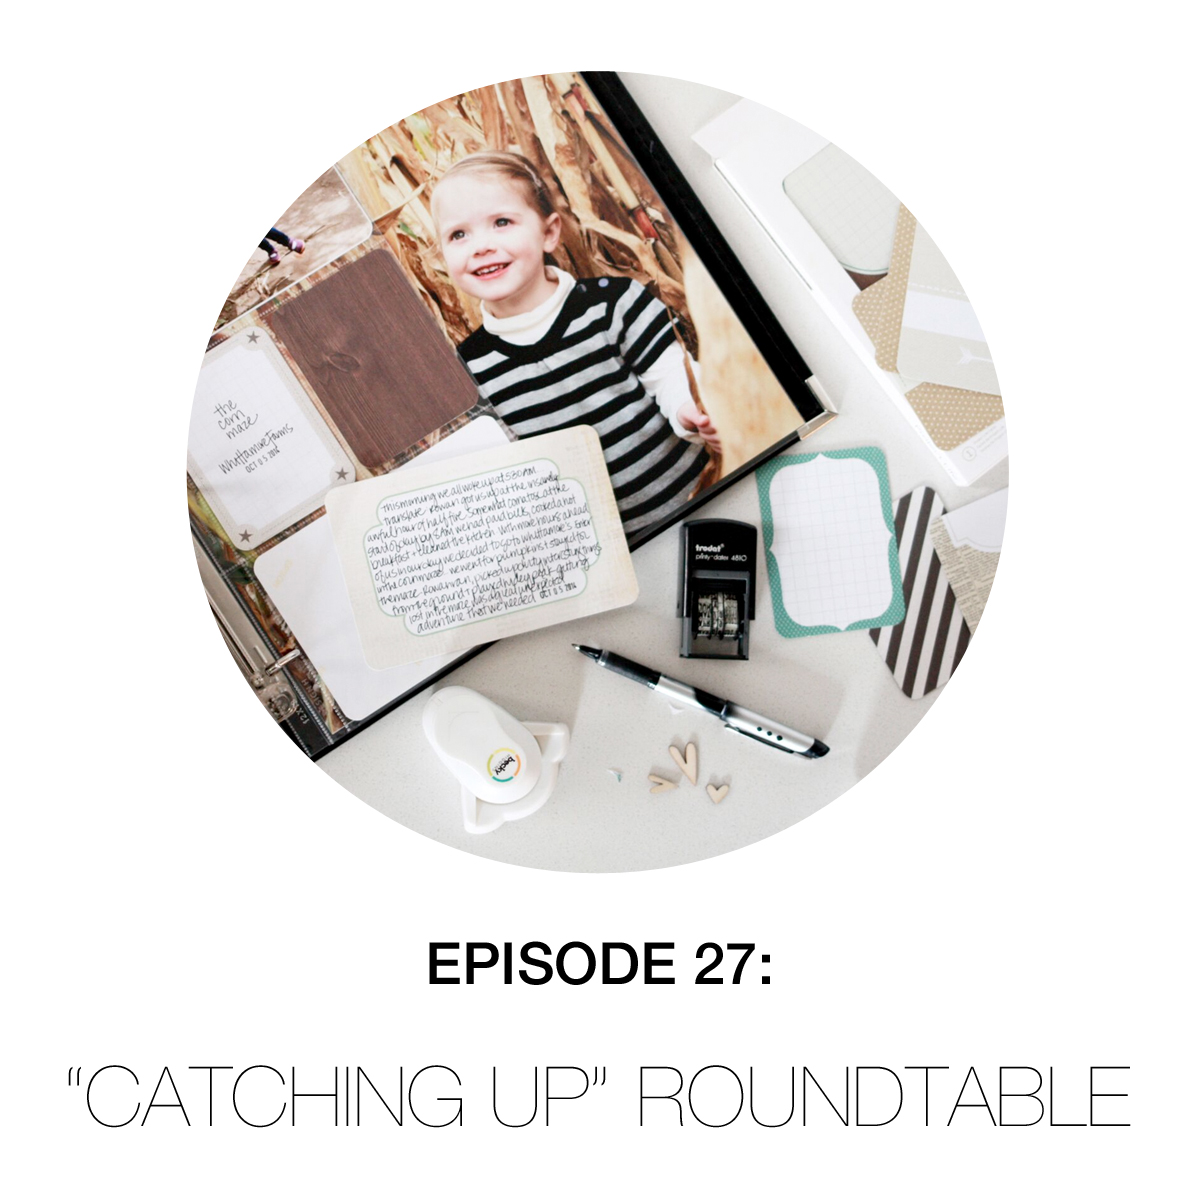 Episode 27: Catching Up Roundtable